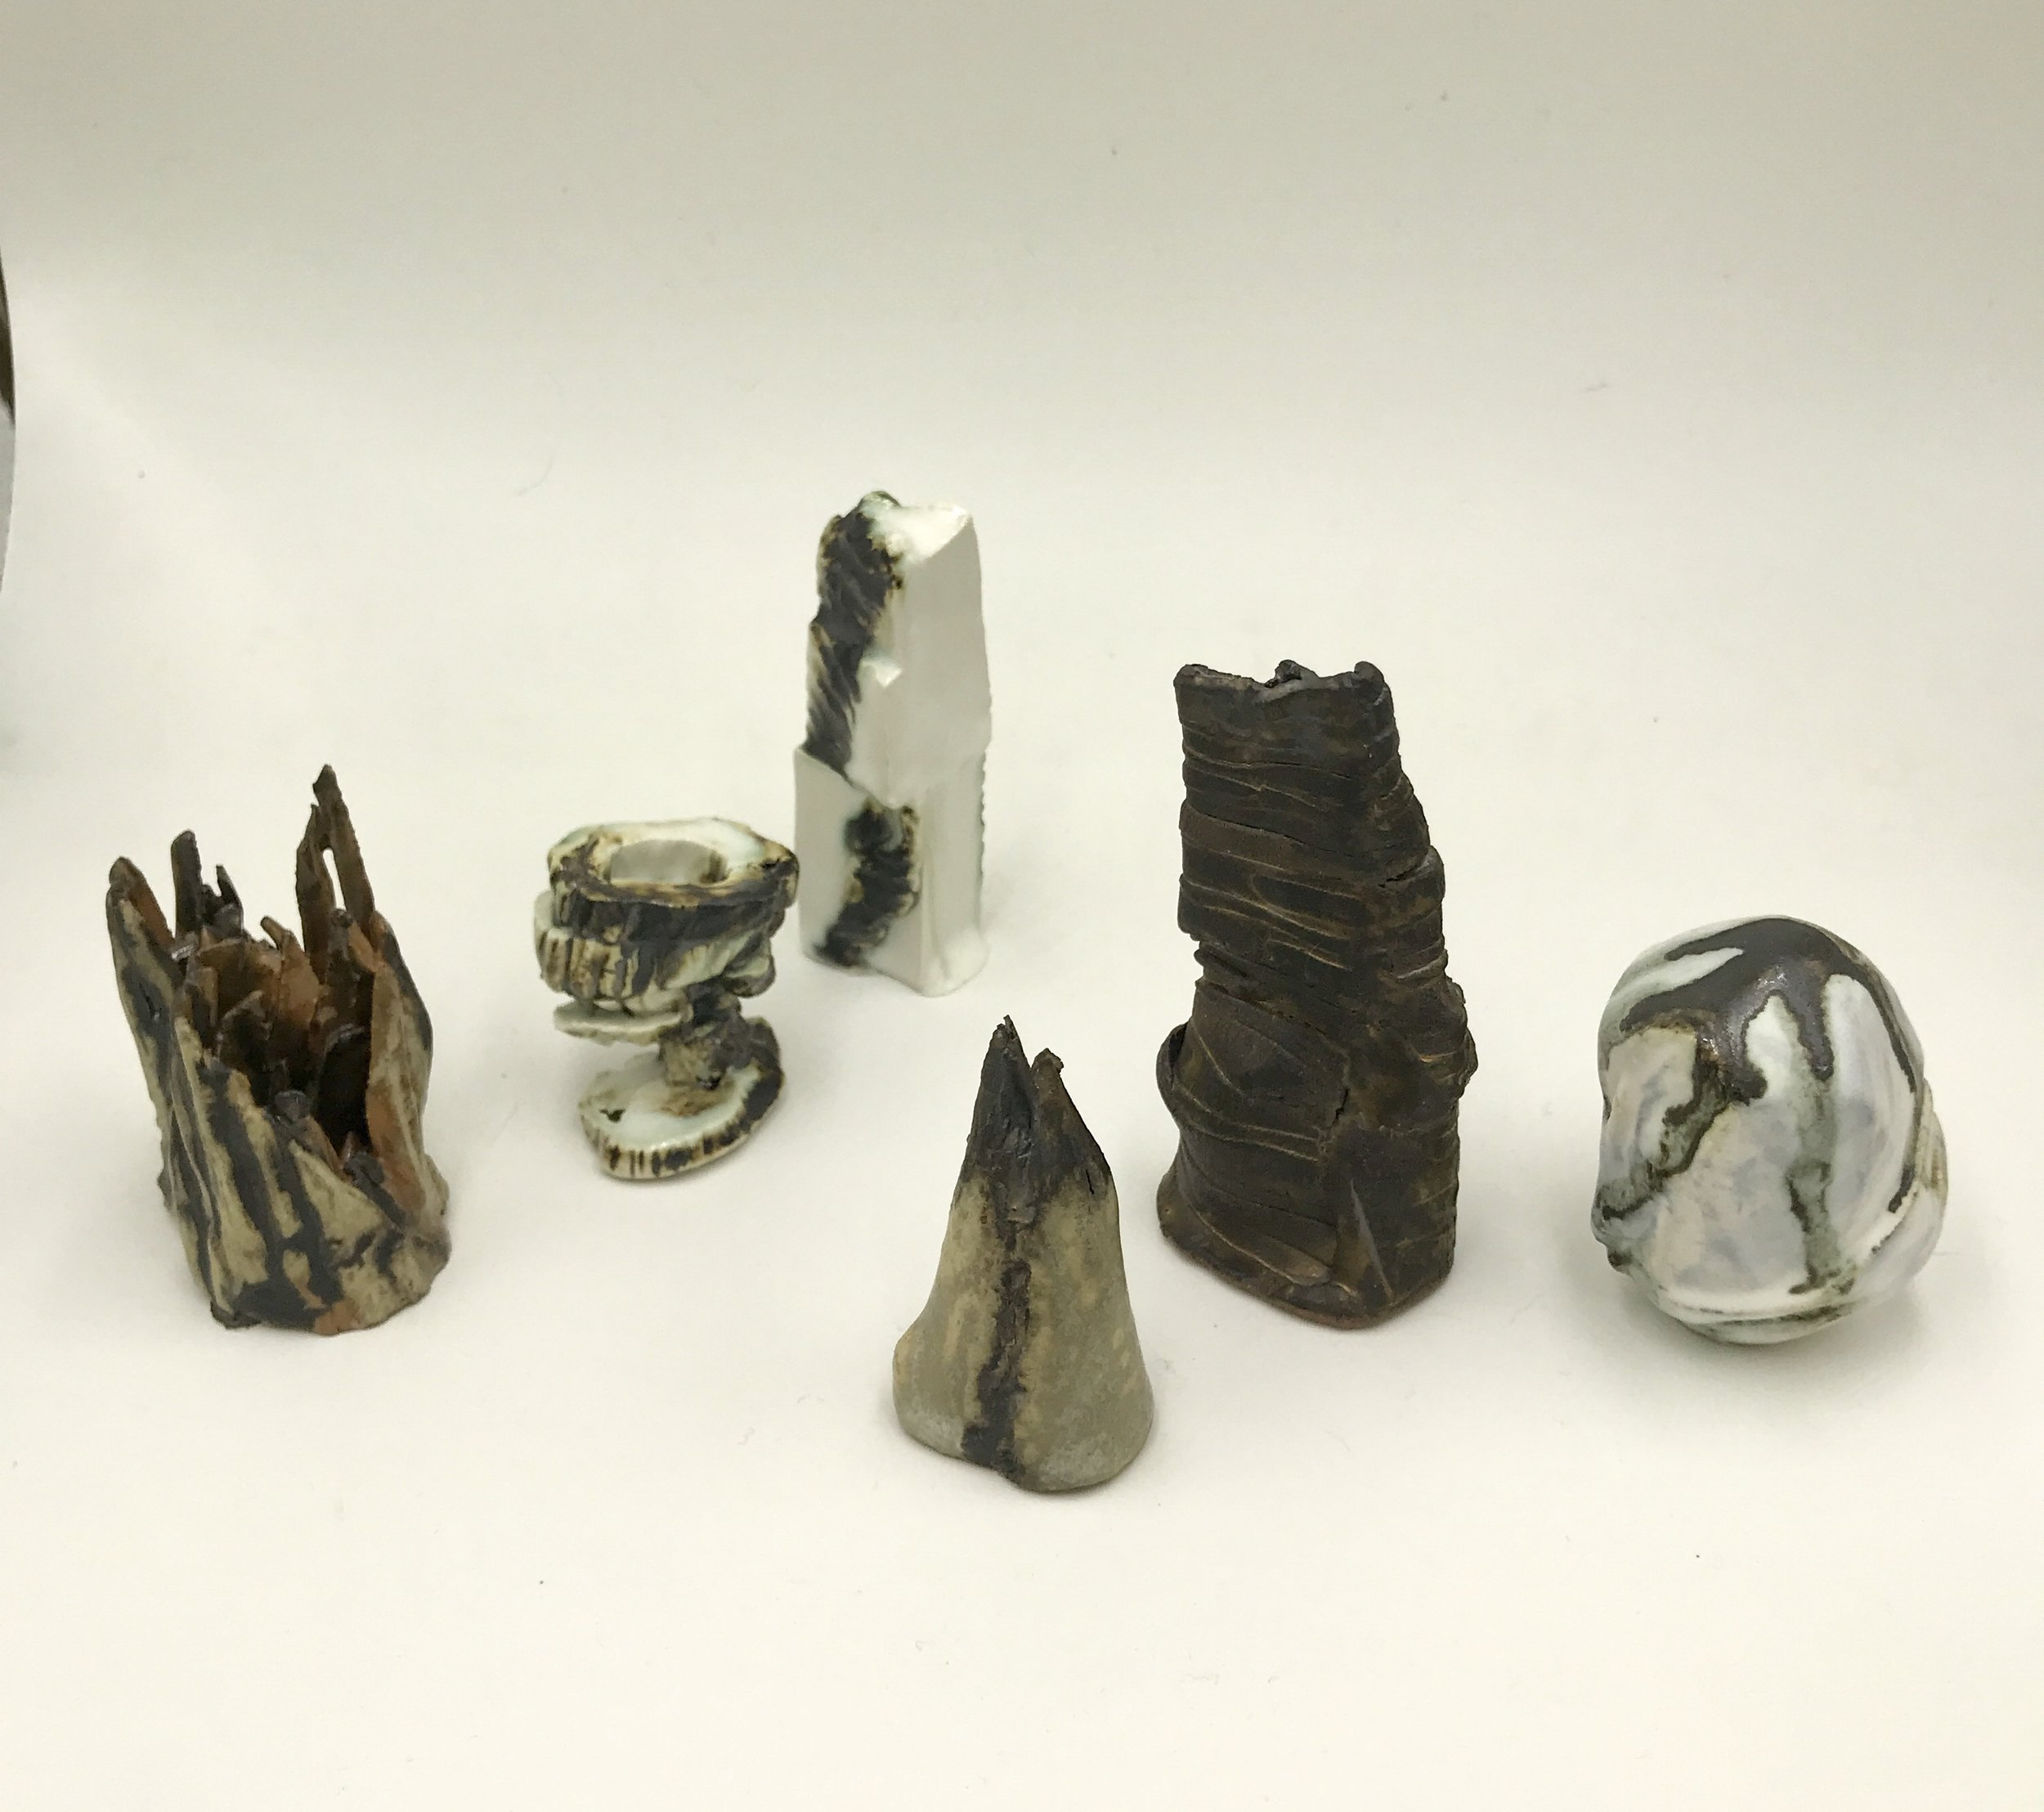 Hilda Shen,  Range of Mountains,  2014-2019. Glazed clay, a group of six, each around 2.75 x 2 x 2.25 inches, ©Hilda Shen, courtesy of Fou Gallery